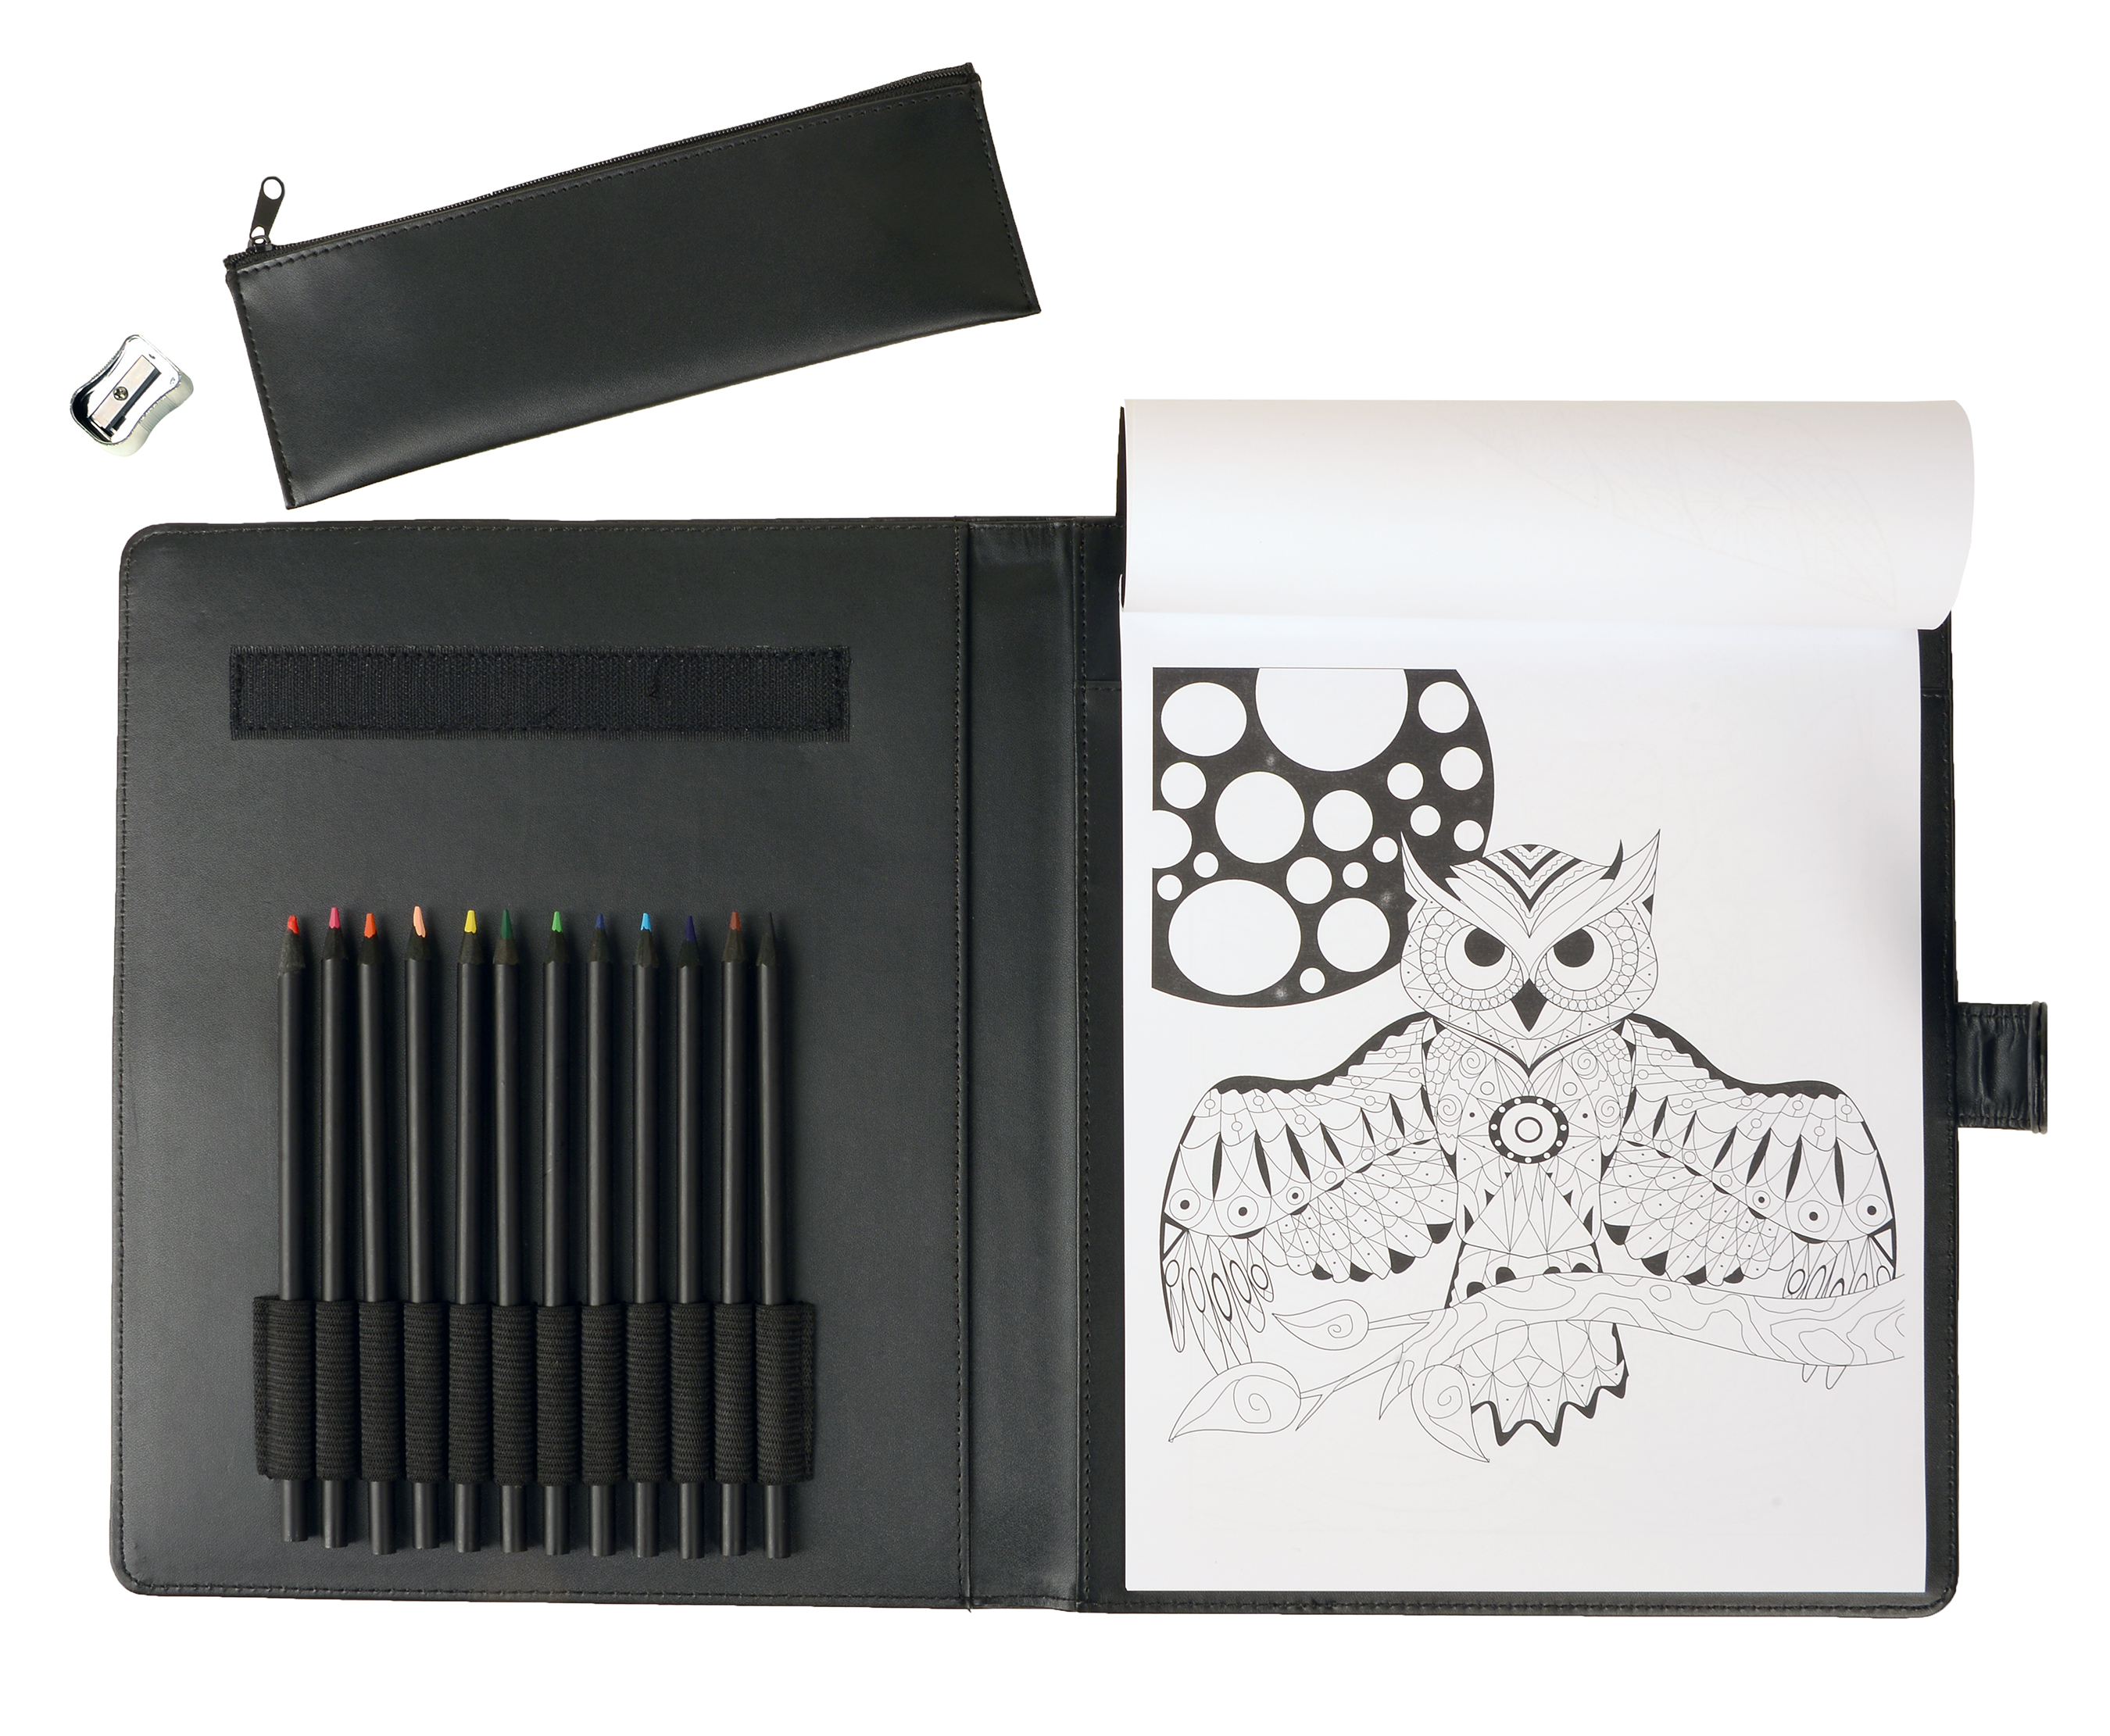 Complete Adult Coloring Book Kit by Life in Coloring (now with upgraded pencils!)